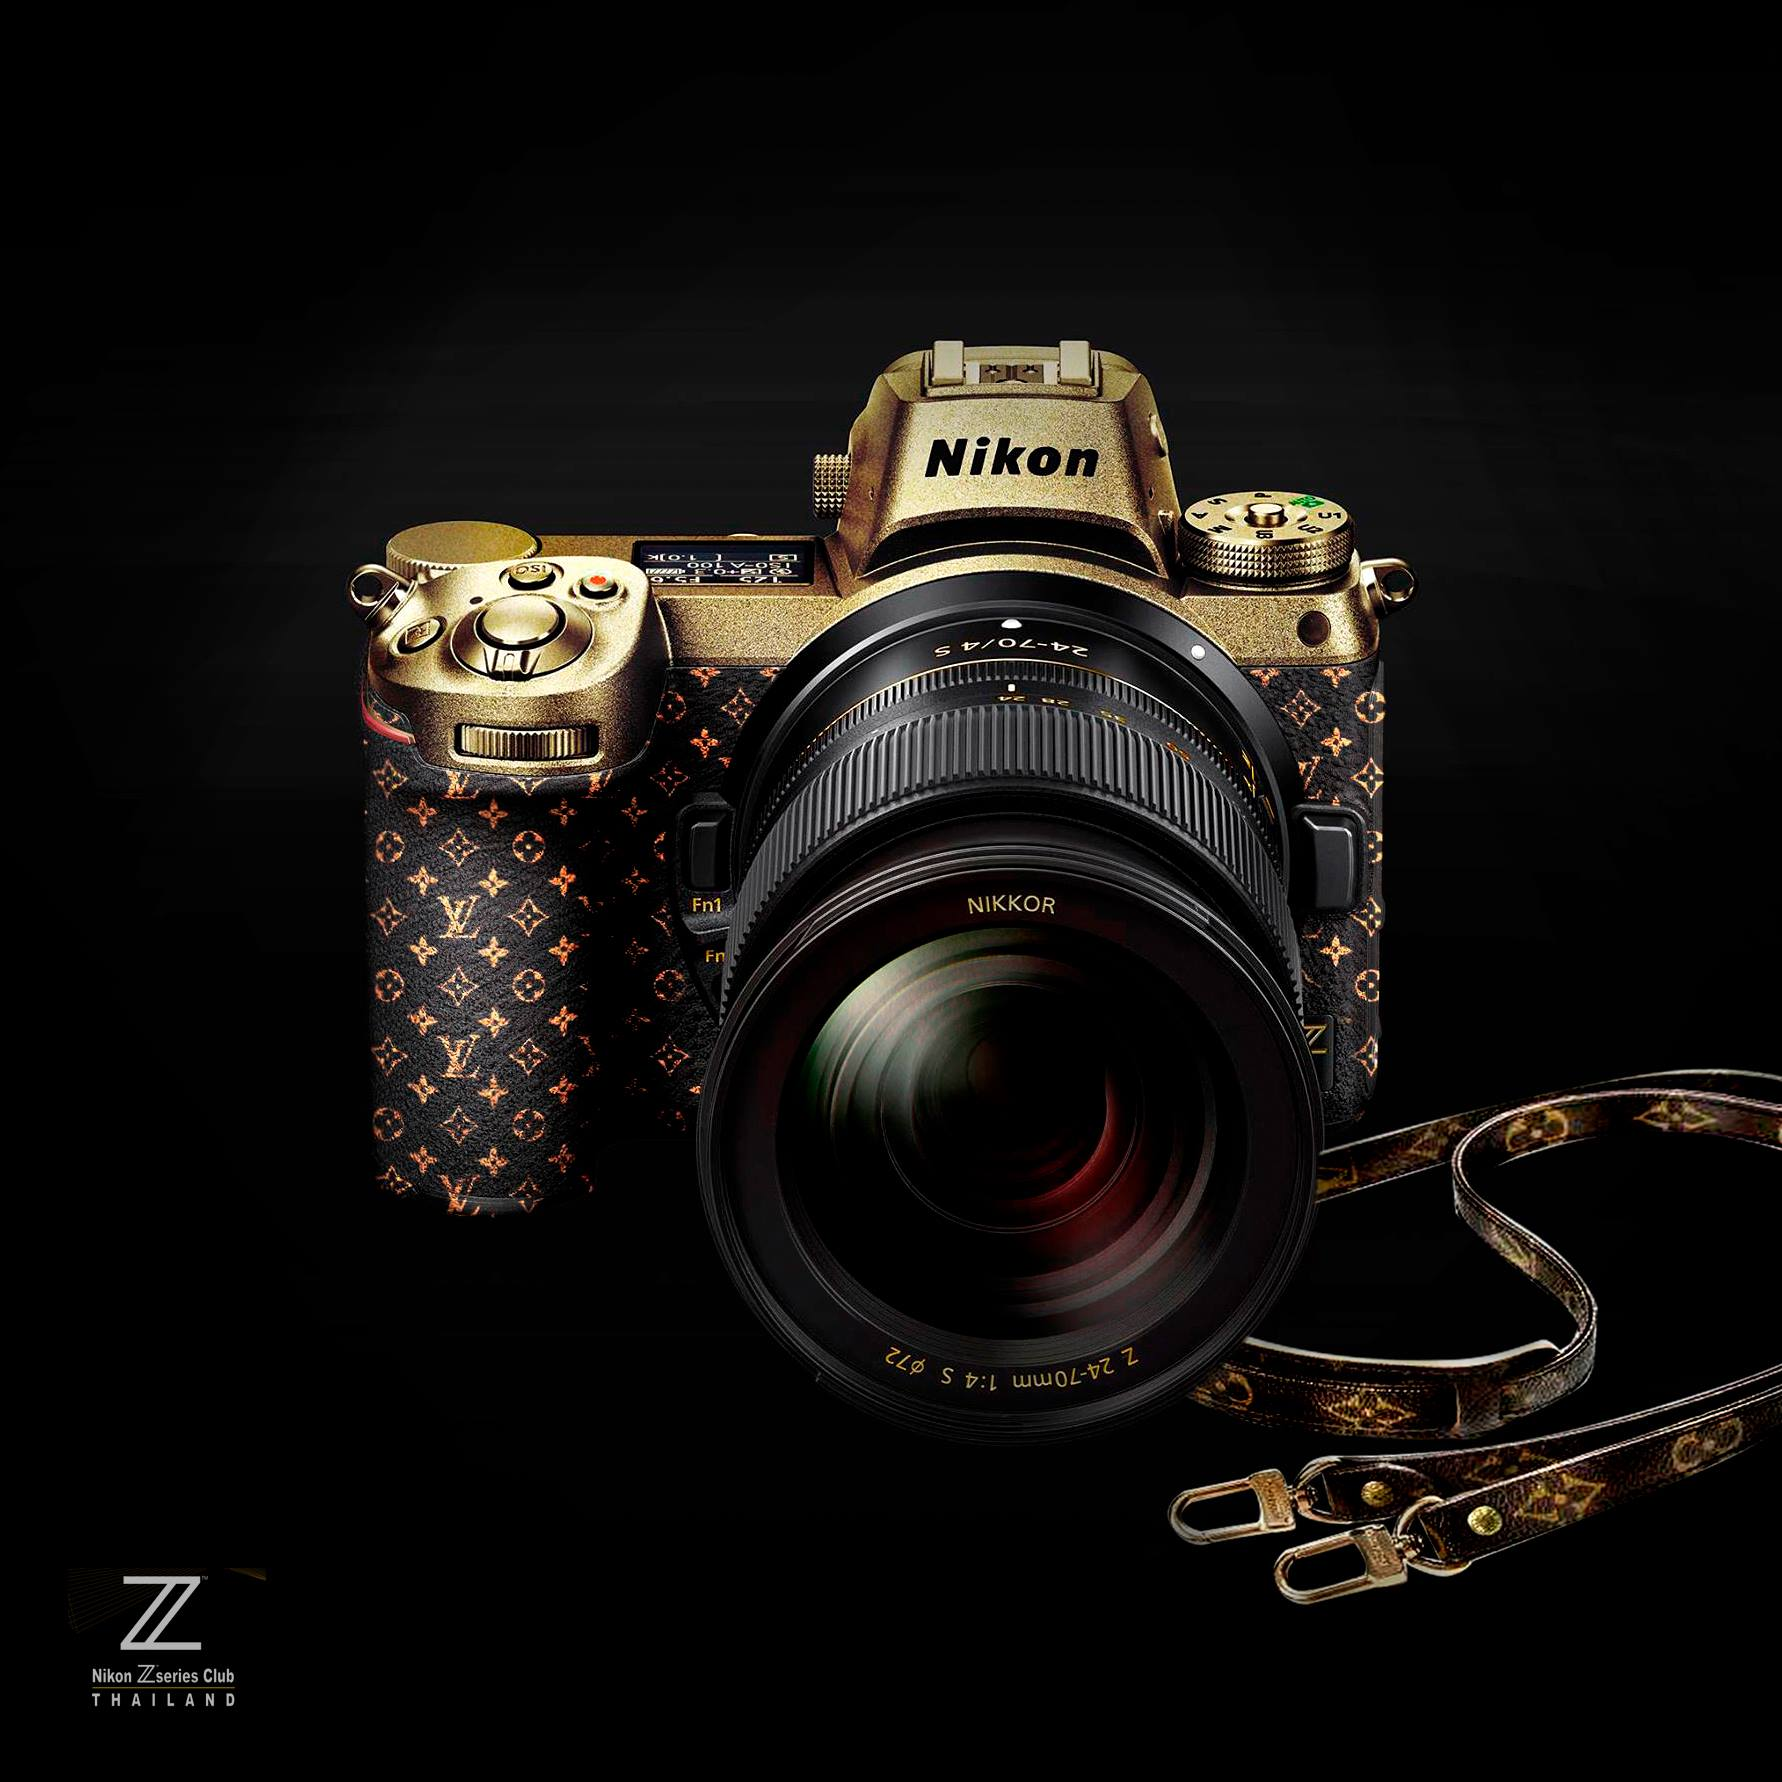 Nikon Z7 Louis Vuitton LV Edition